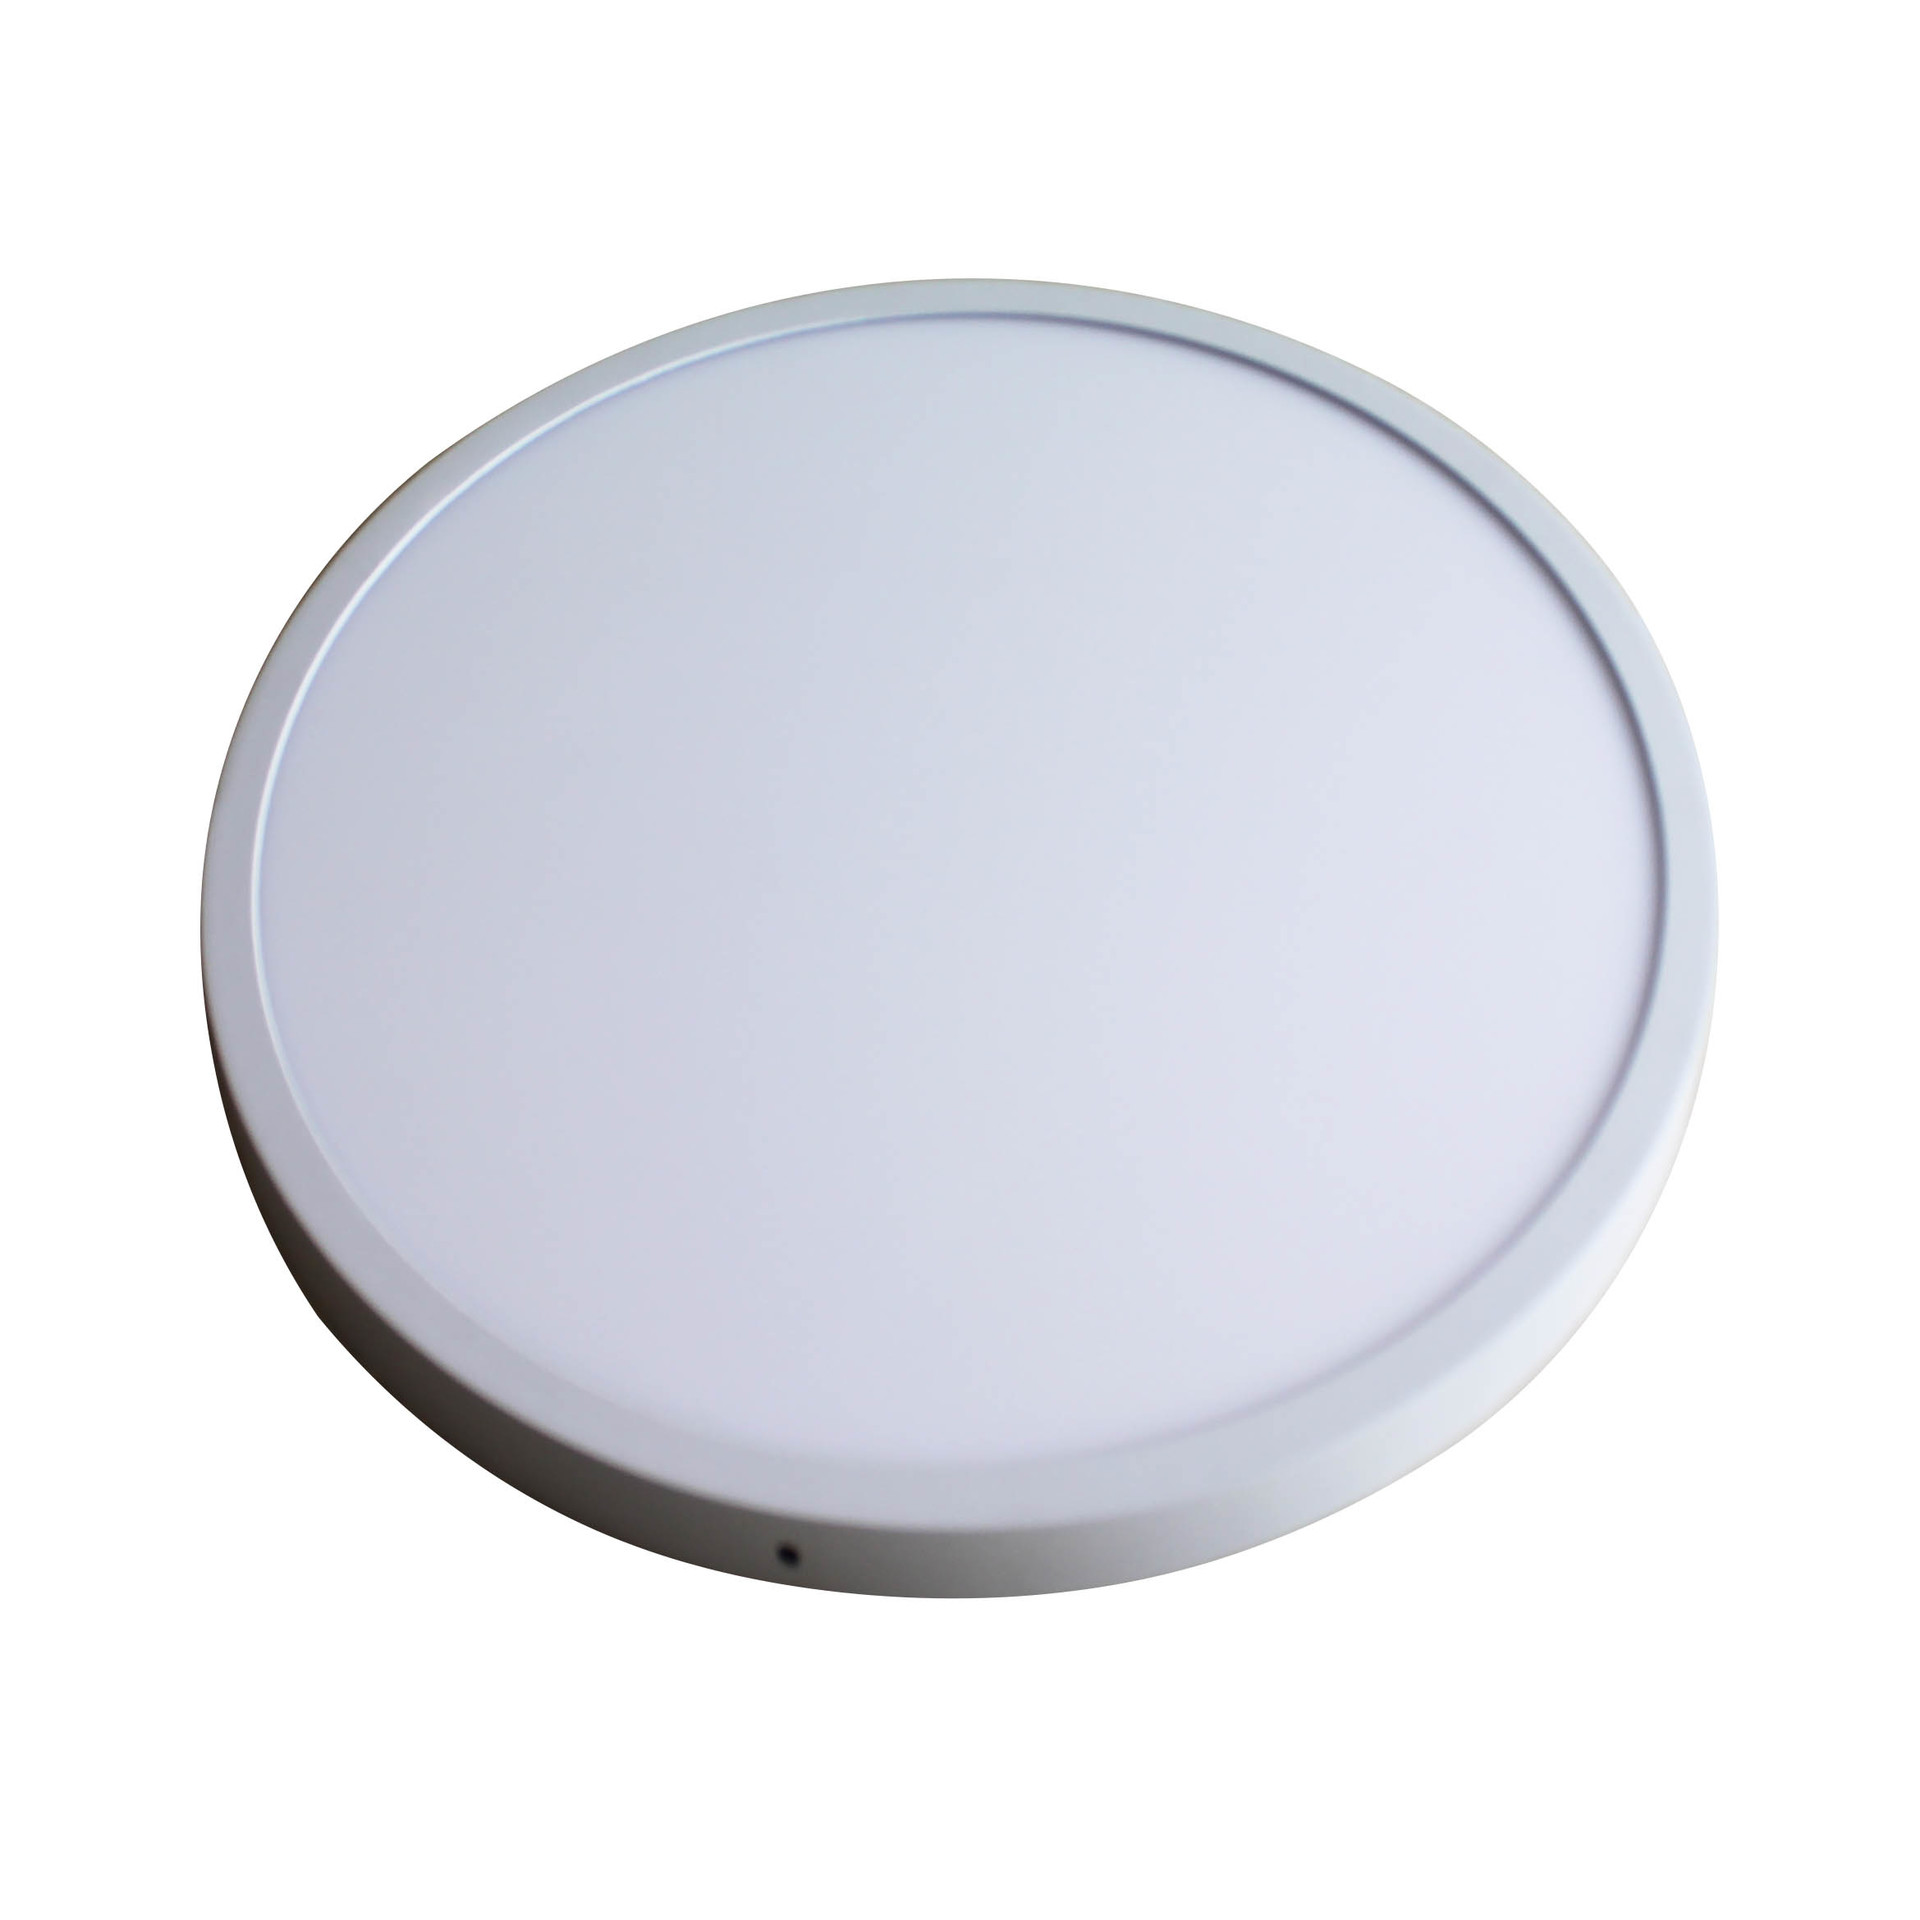 32W-48W LED Ceiling Light Circular 3 years warranty